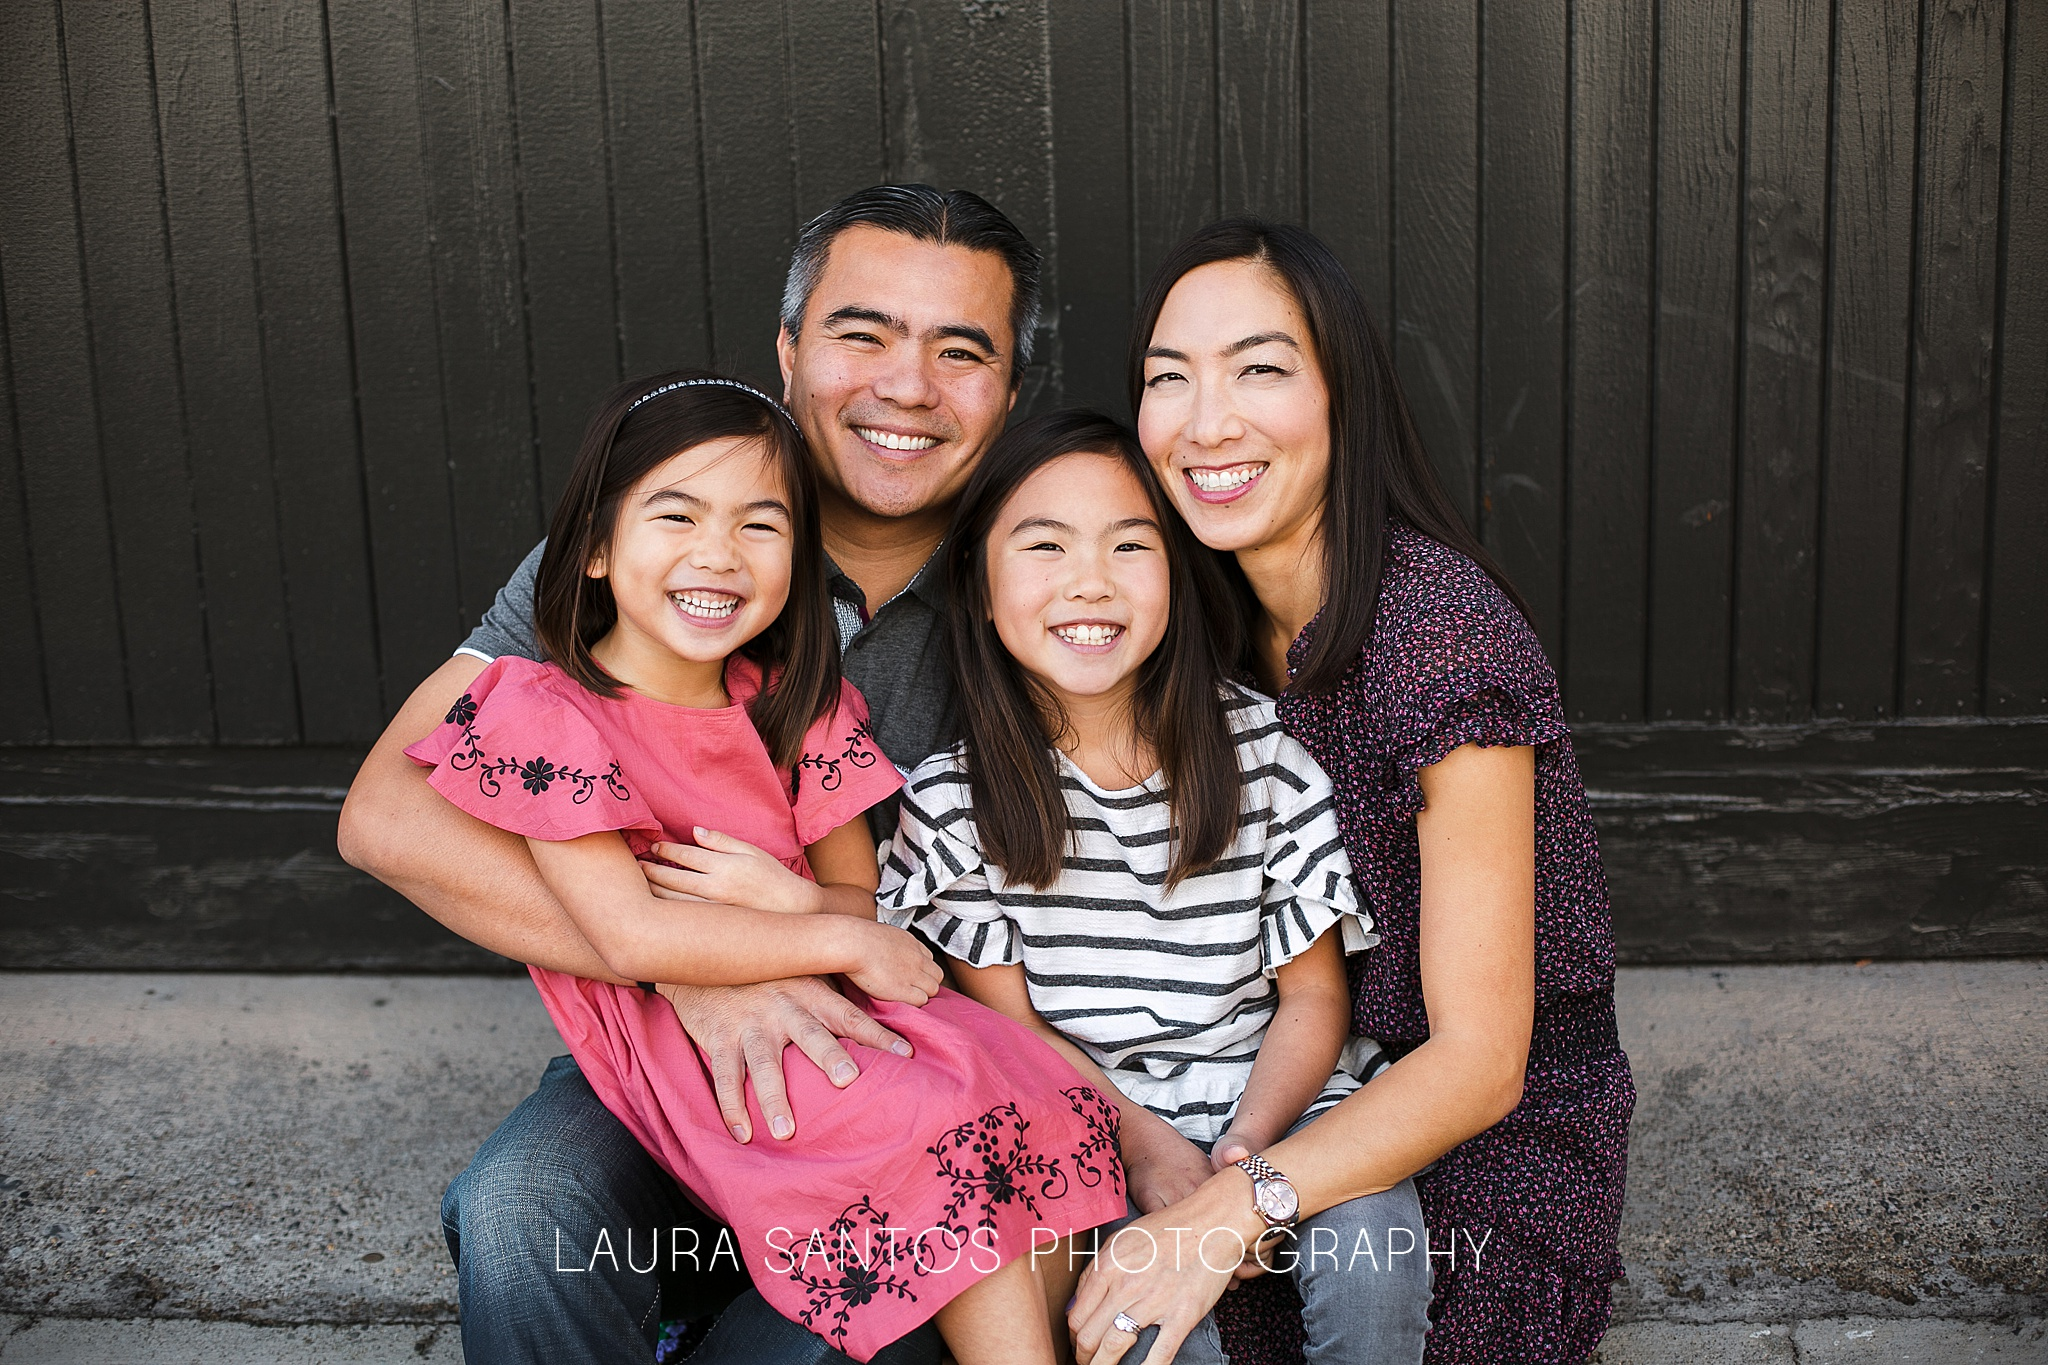 Laura Santos Photography Portland Oregon Family Photographer_0870.jpg